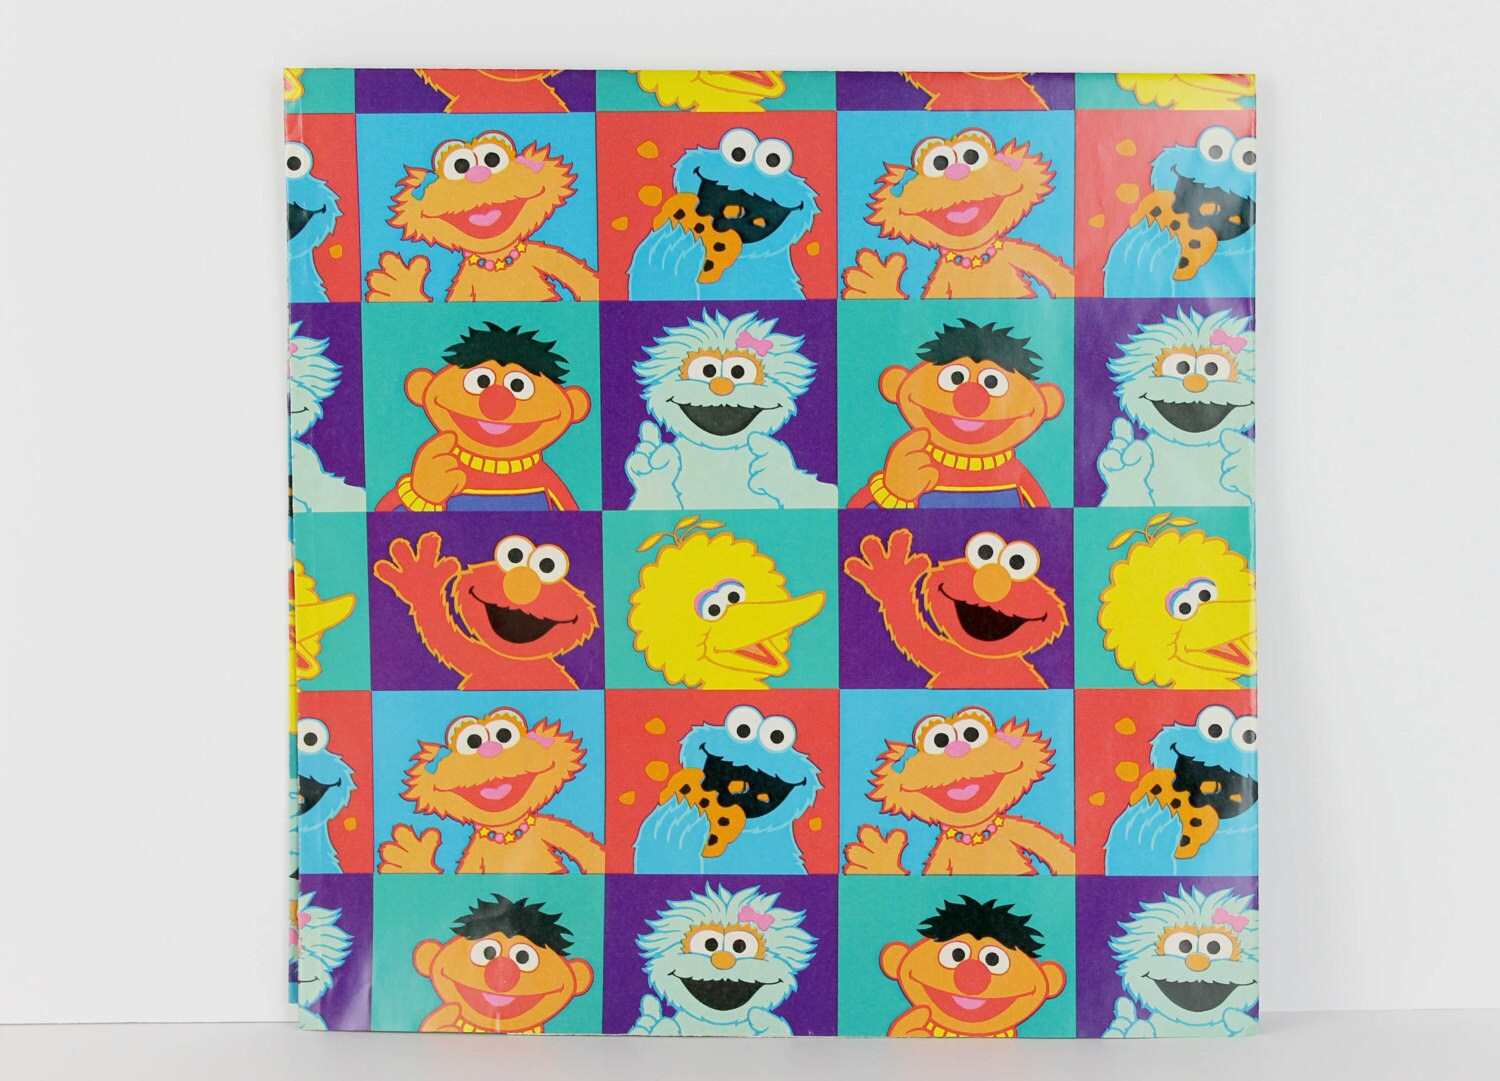 elmo wrapping paper Elmo wrapping paper - compare prices at buycheaprcom help iris 105149 this set includes 2 wrapping paper boxes and 2 ribbon storage boxes great for storing and organizing all season wrapping paper, ribbons and bows.